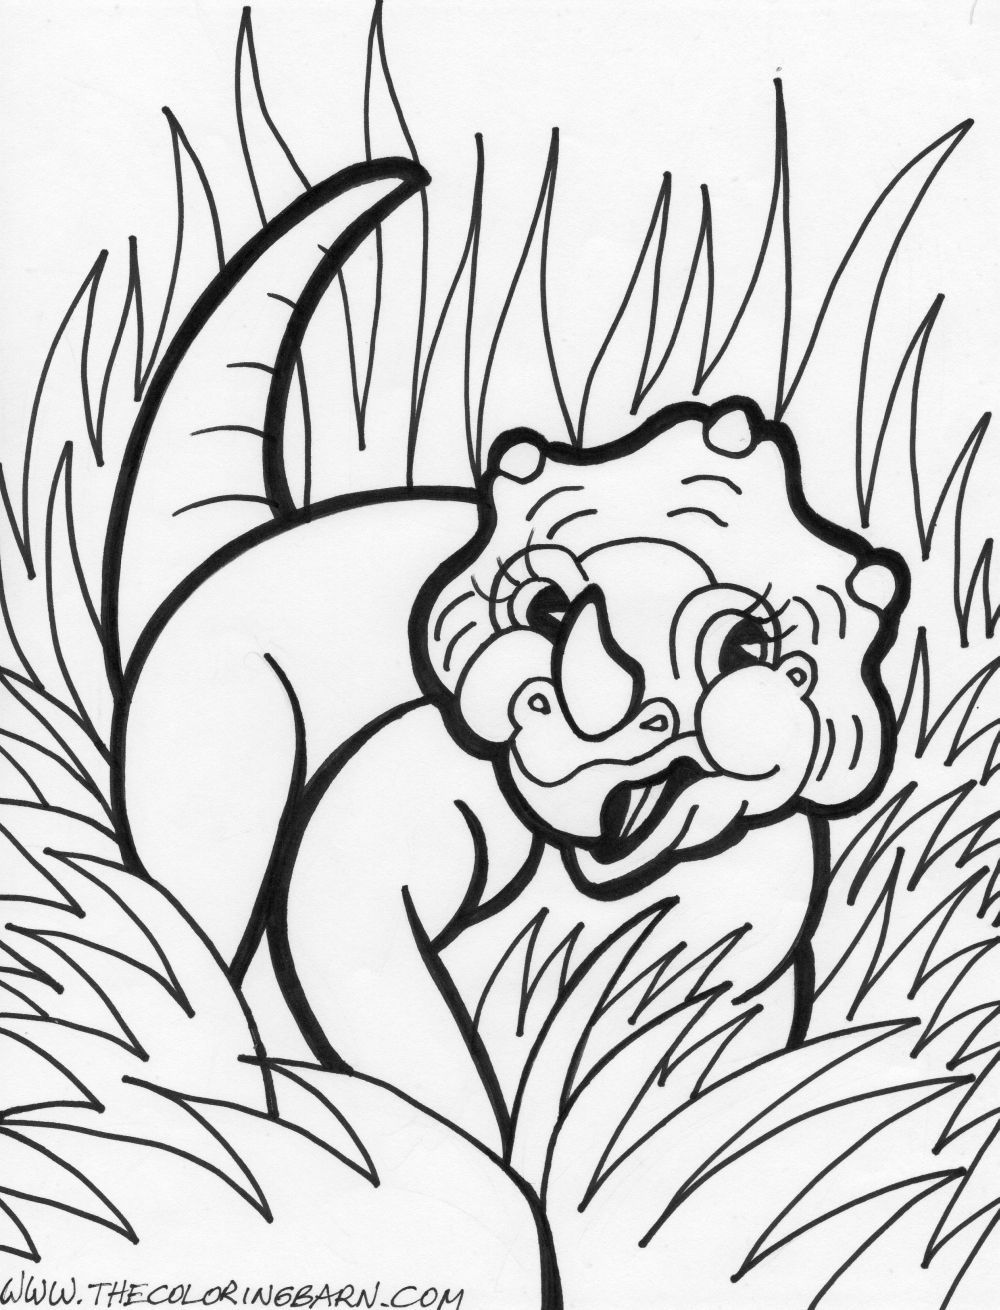 Childrens colouring dinosaurs - Dinosaurs Coloring Page Education Dinosaurs Fossils Pinterest Dinosaur Coloring Pages Scavenger Hunt Clues And Dino Eggs